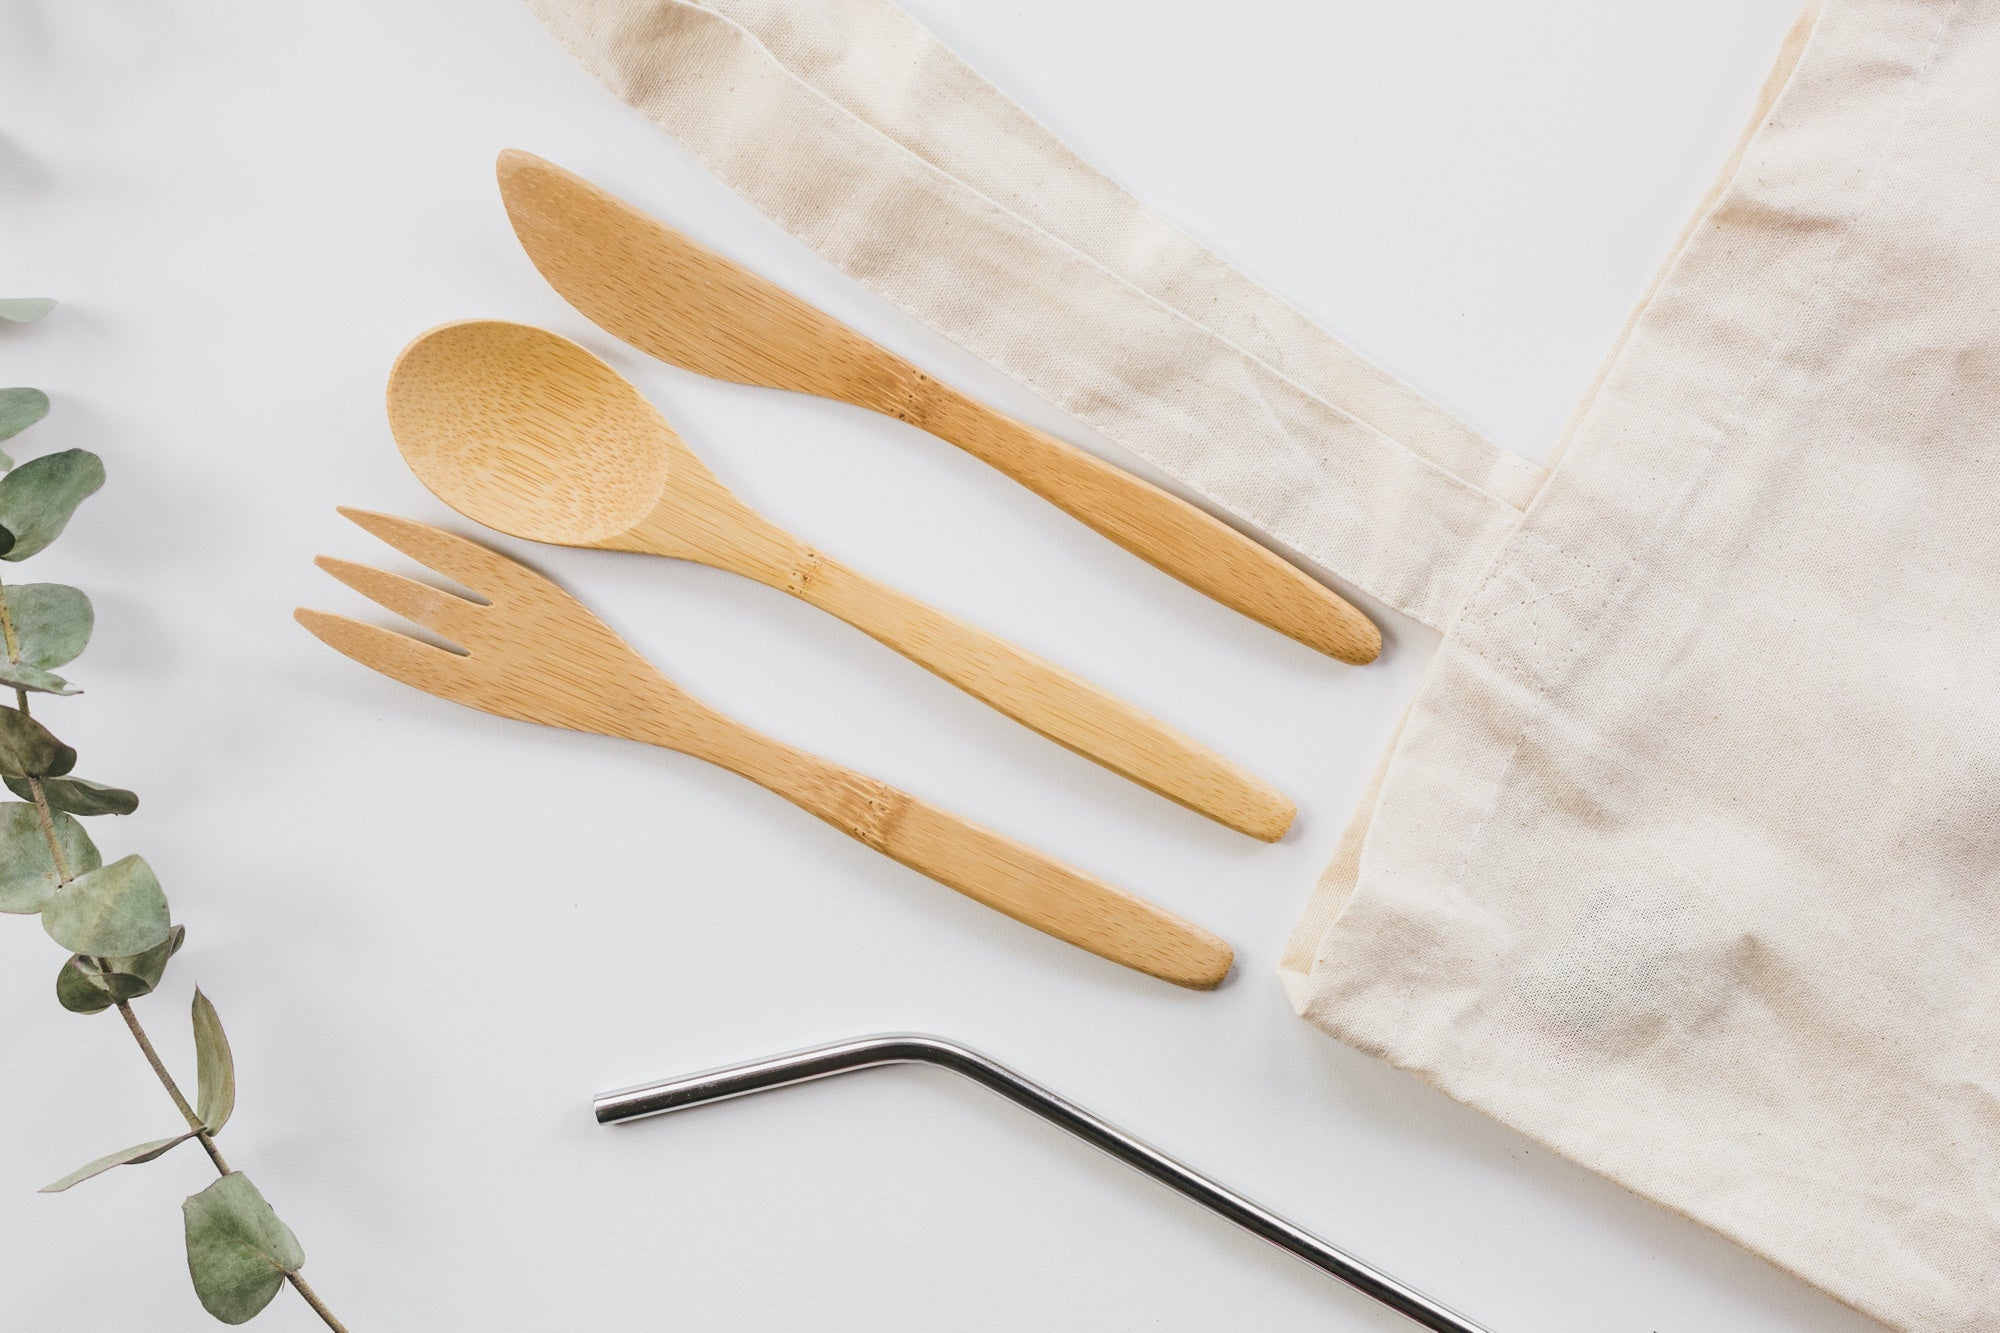 A white label tote bag and bamboo cutlery